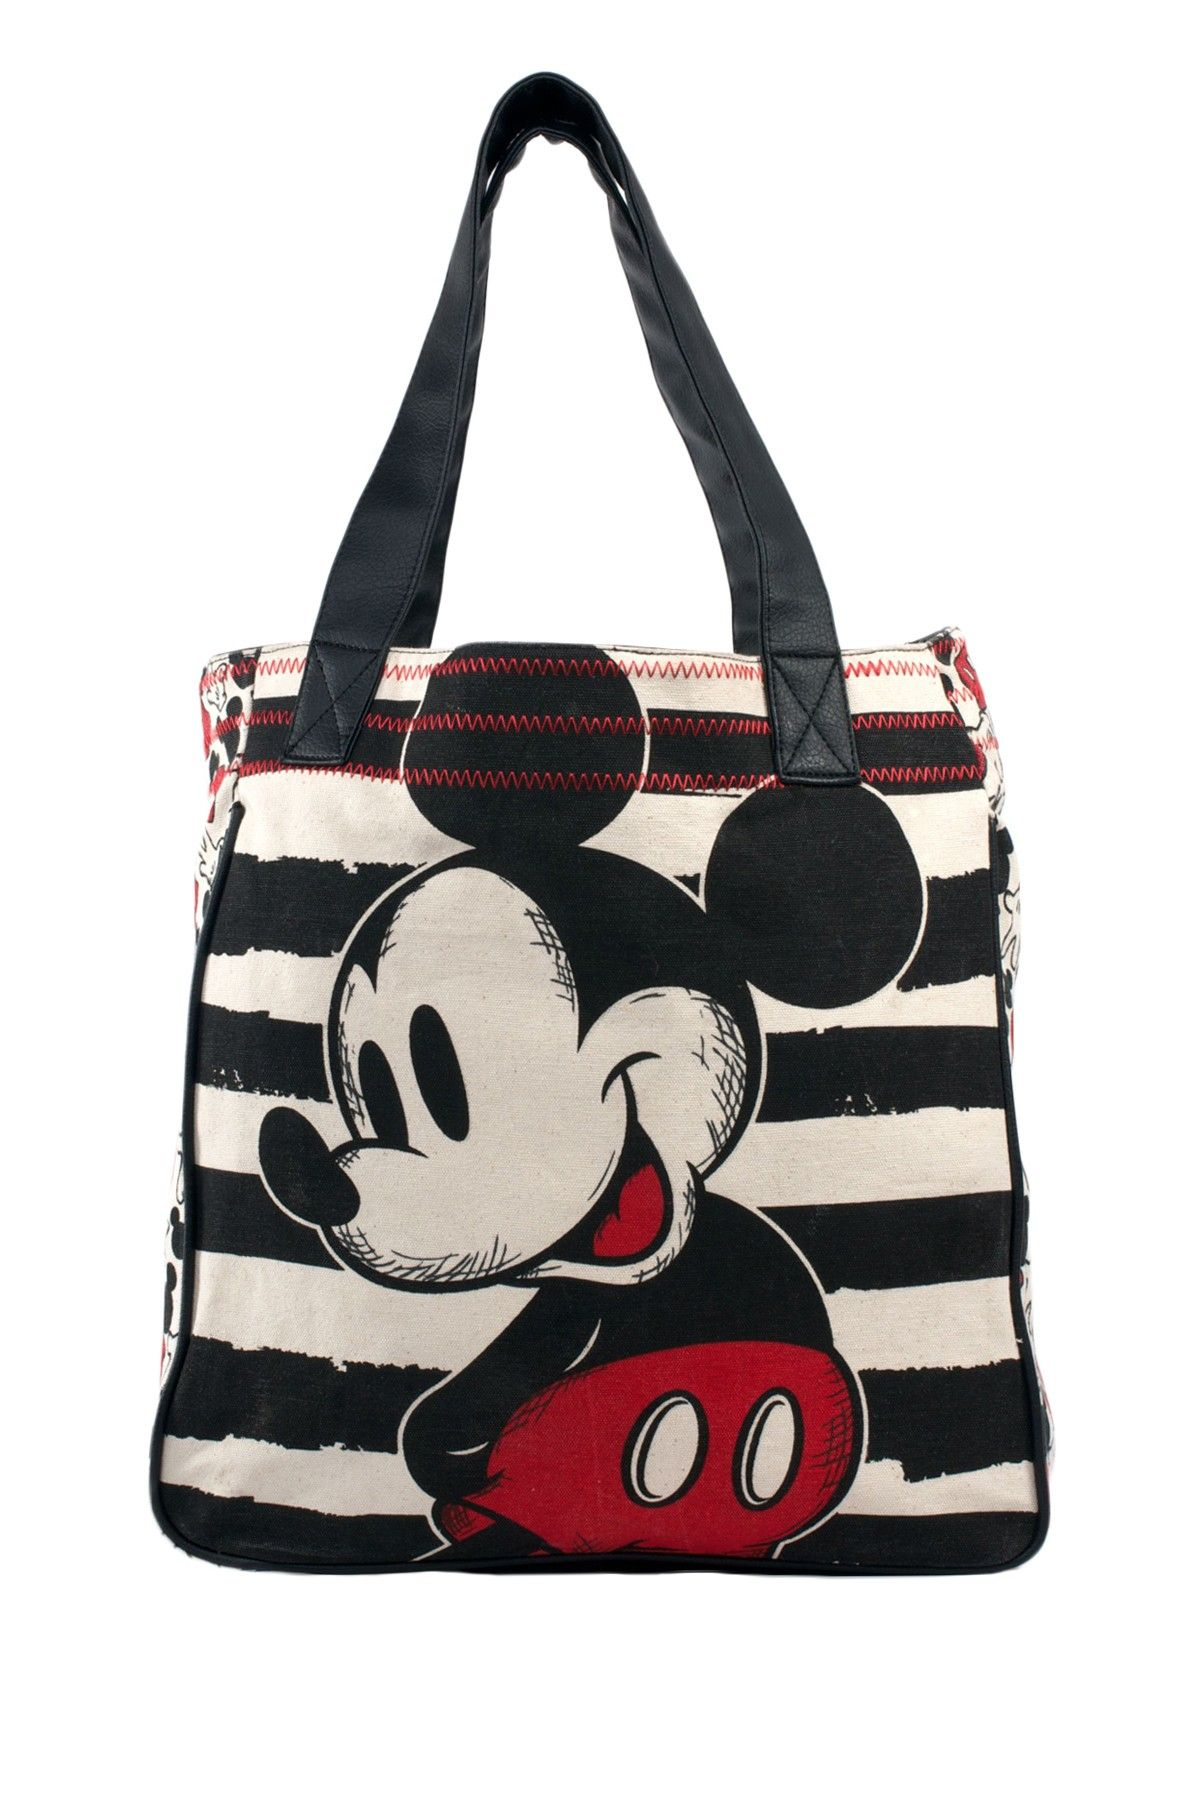 DISNEY MINNIE MOUSE RED PINK GIRLS PURSES SHOPPER BAG SCHOOL SHOULDER BAGS GIFTS